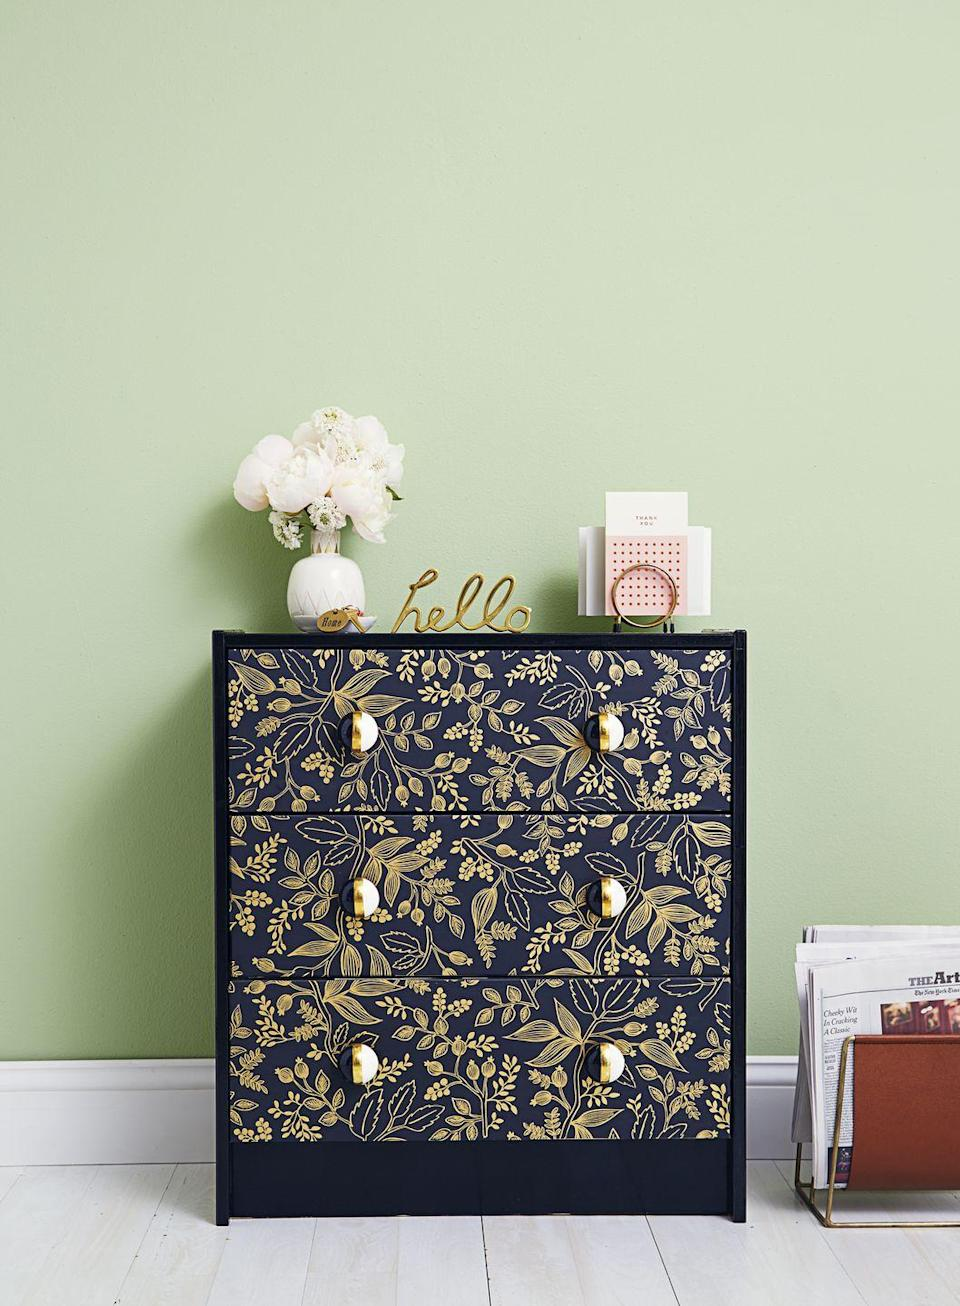 "<p>Spruce up a chest of drawers with new hardware, paint, and wallpaper. Even a medley of wallpaper samples can get the job, if you're looking for a thrifty solution. </p><p><em><a href=""https://www.goodhousekeeping.com/home/craft-ideas/g3315/rast-ikea-dresser-hacks/"" rel=""nofollow noopener"" target=""_blank"" data-ylk=""slk:Get the tutorial »"" class=""link rapid-noclick-resp"">Get the tutorial »</a></em> </p>"